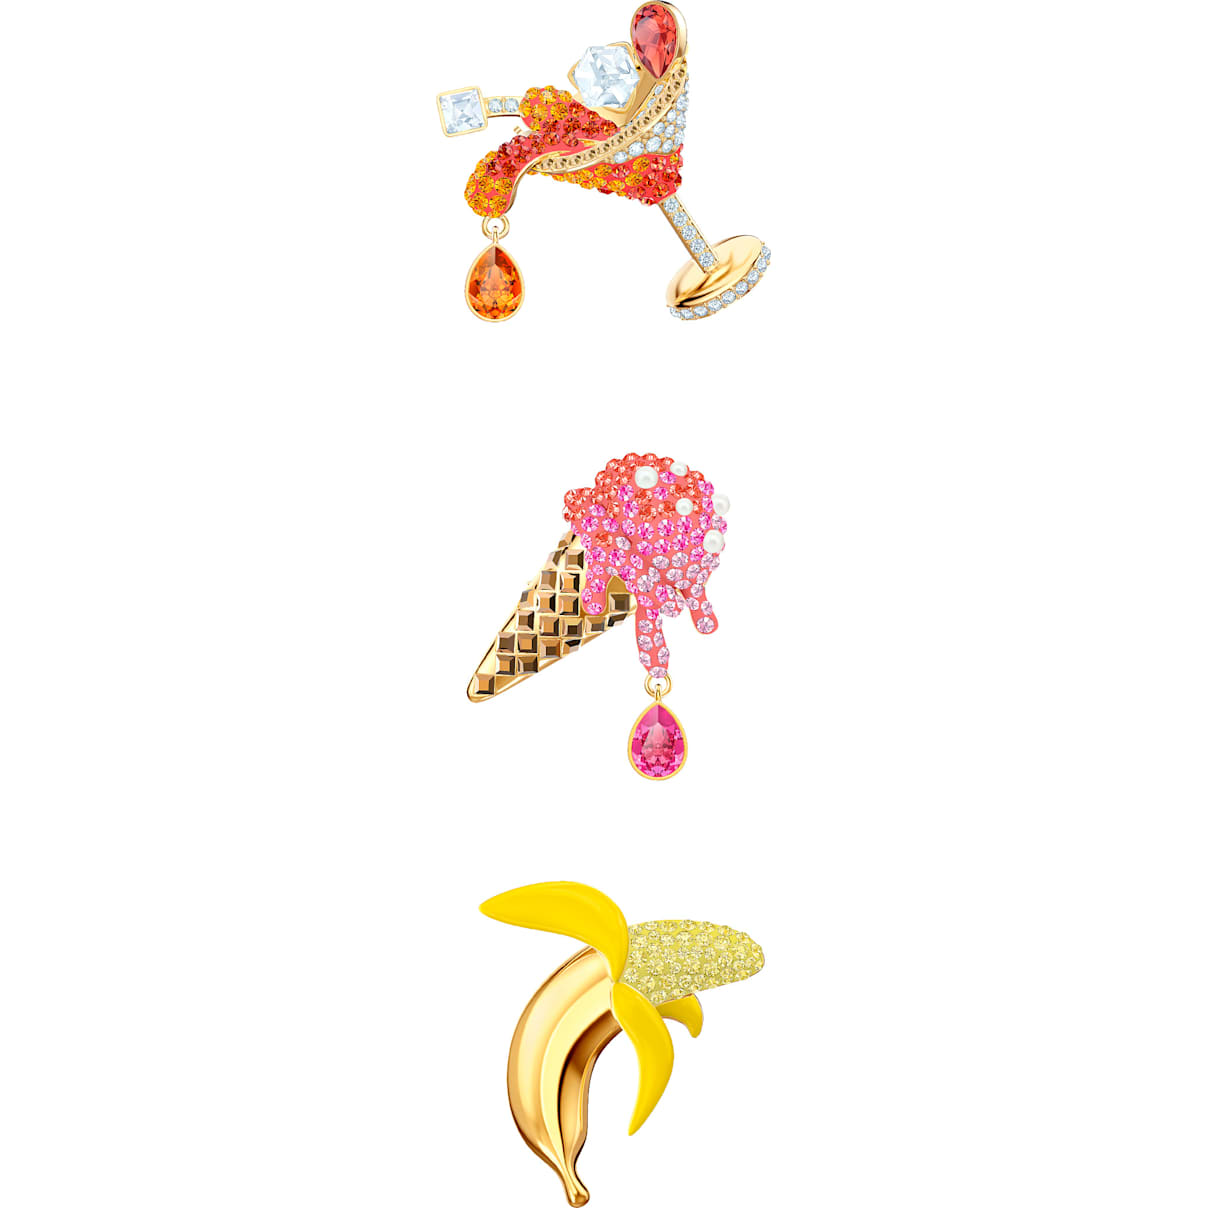 Swarovski No Regrets Brooch Set, Multi-colored, Gold-tone plated